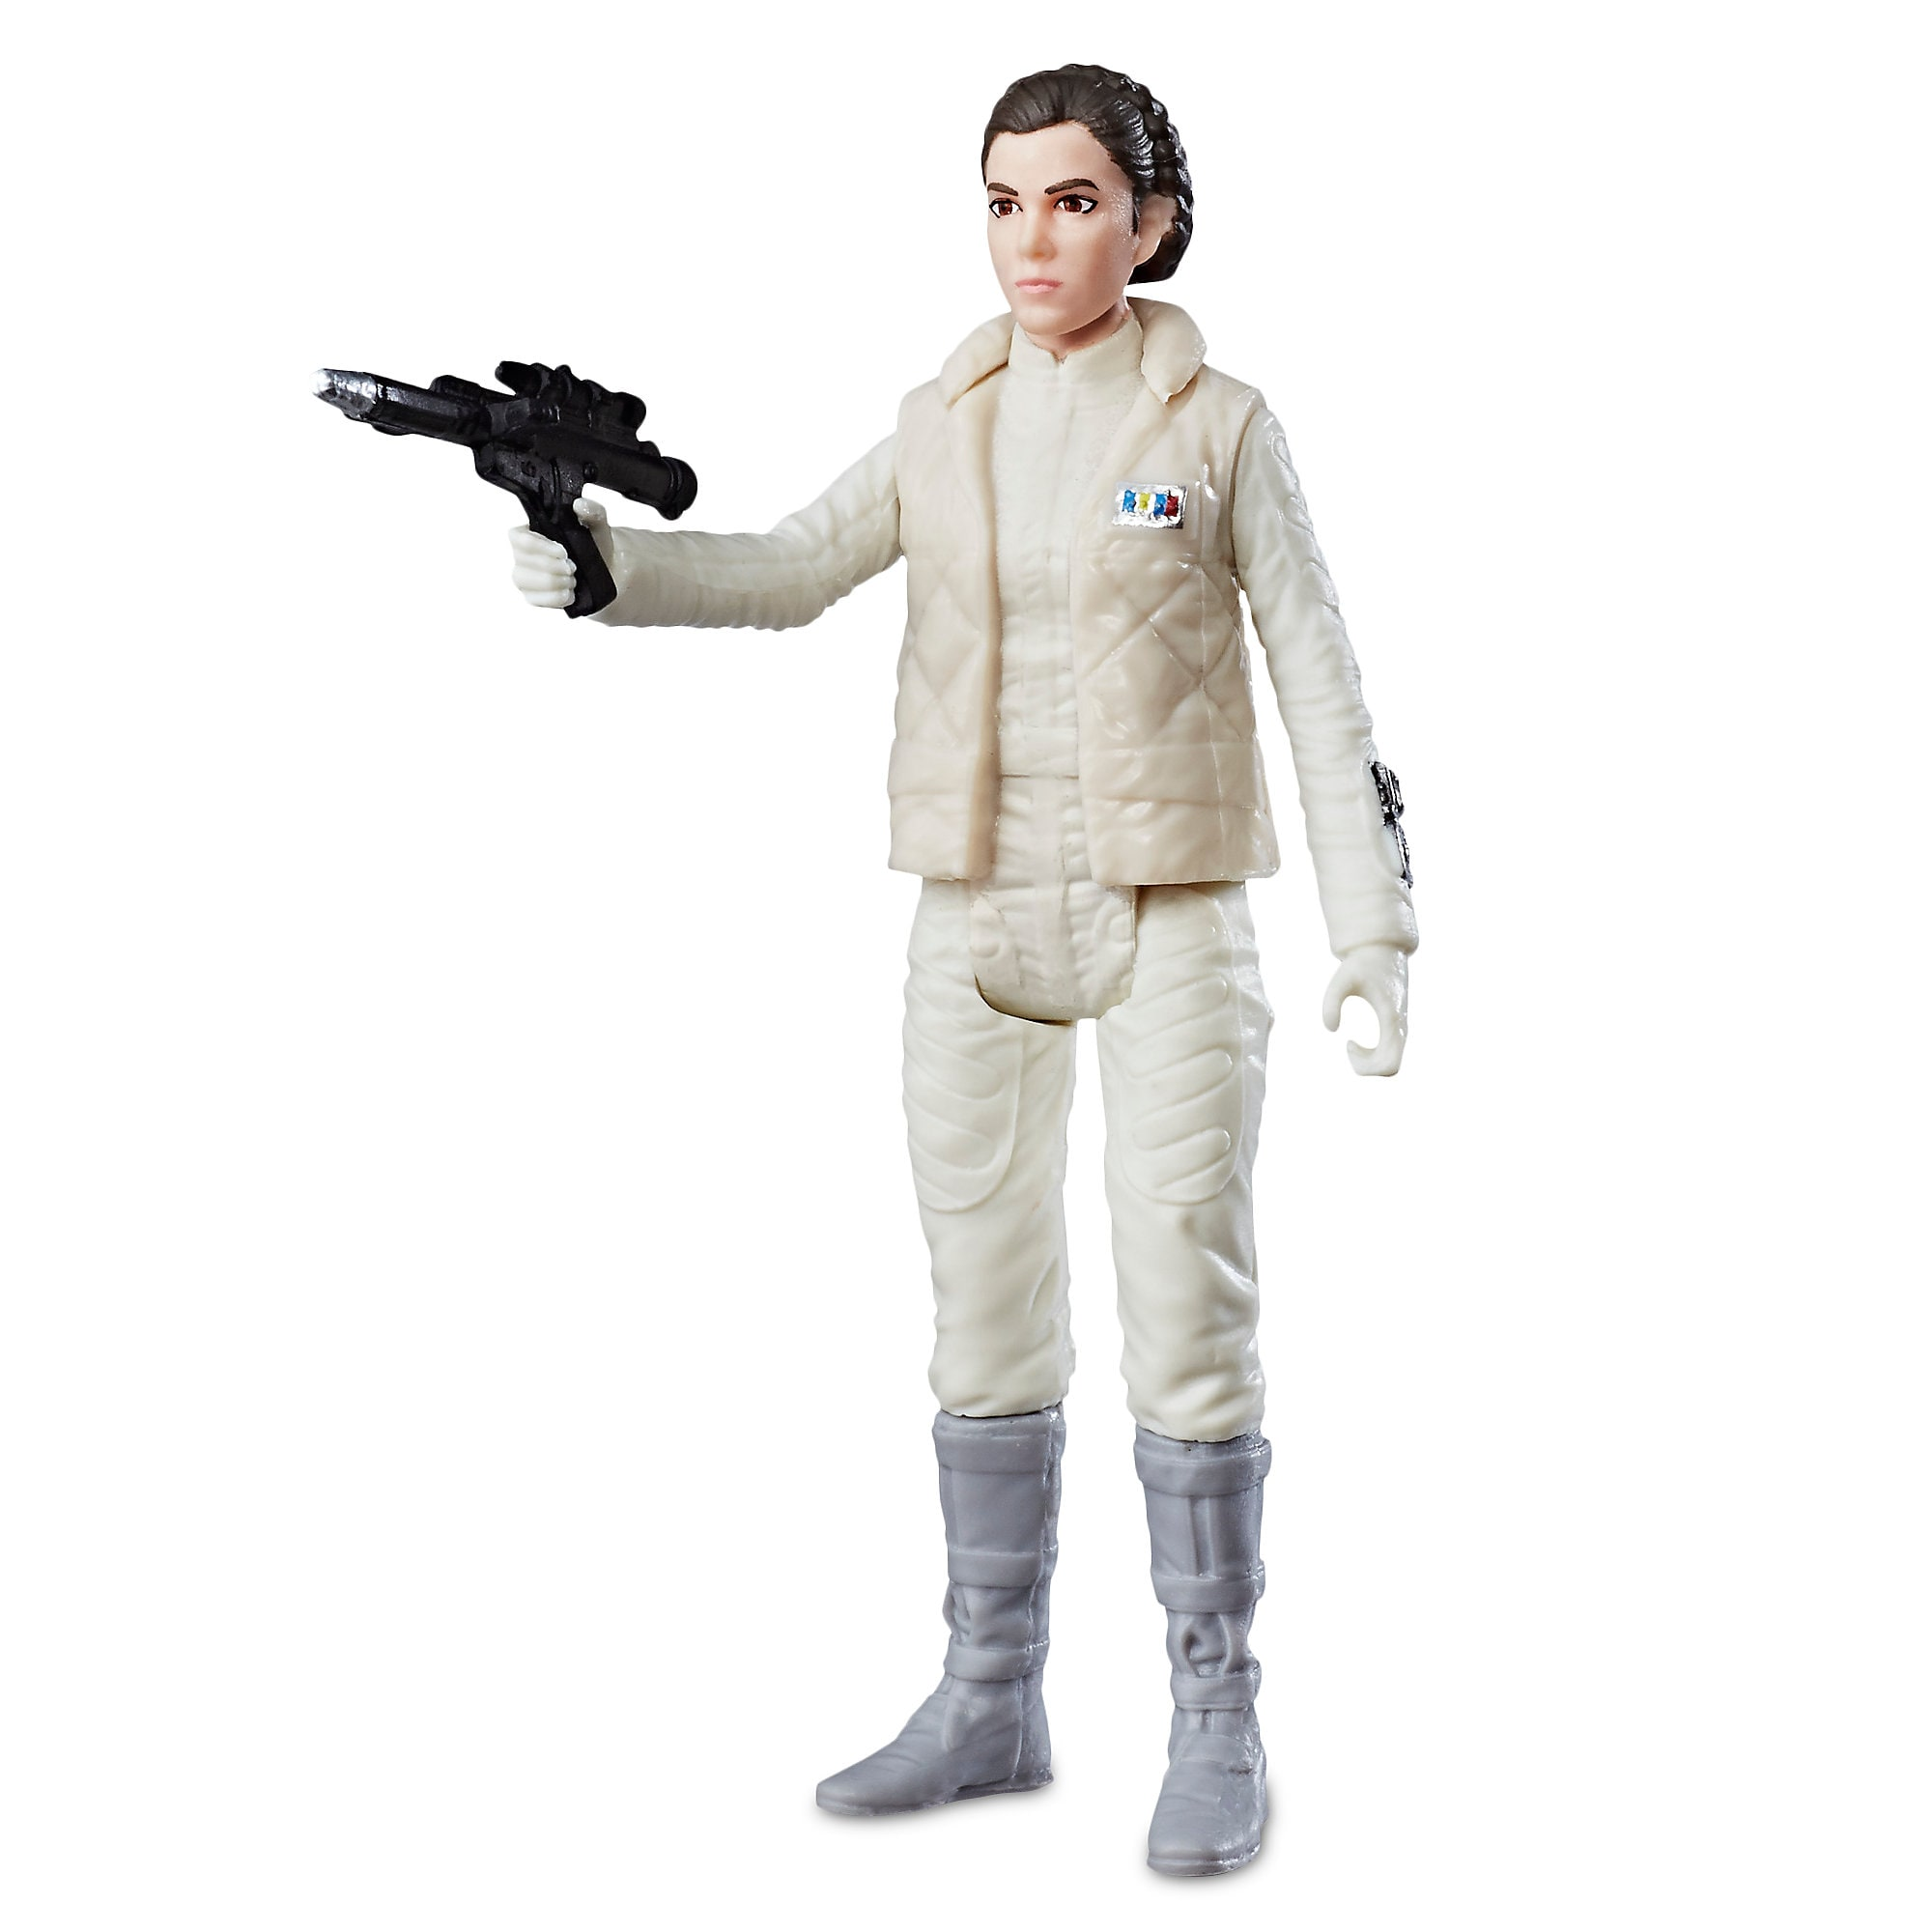 Princess Leia Organa Force Link 2.0 Action Figure by Hasbro - Star Wars